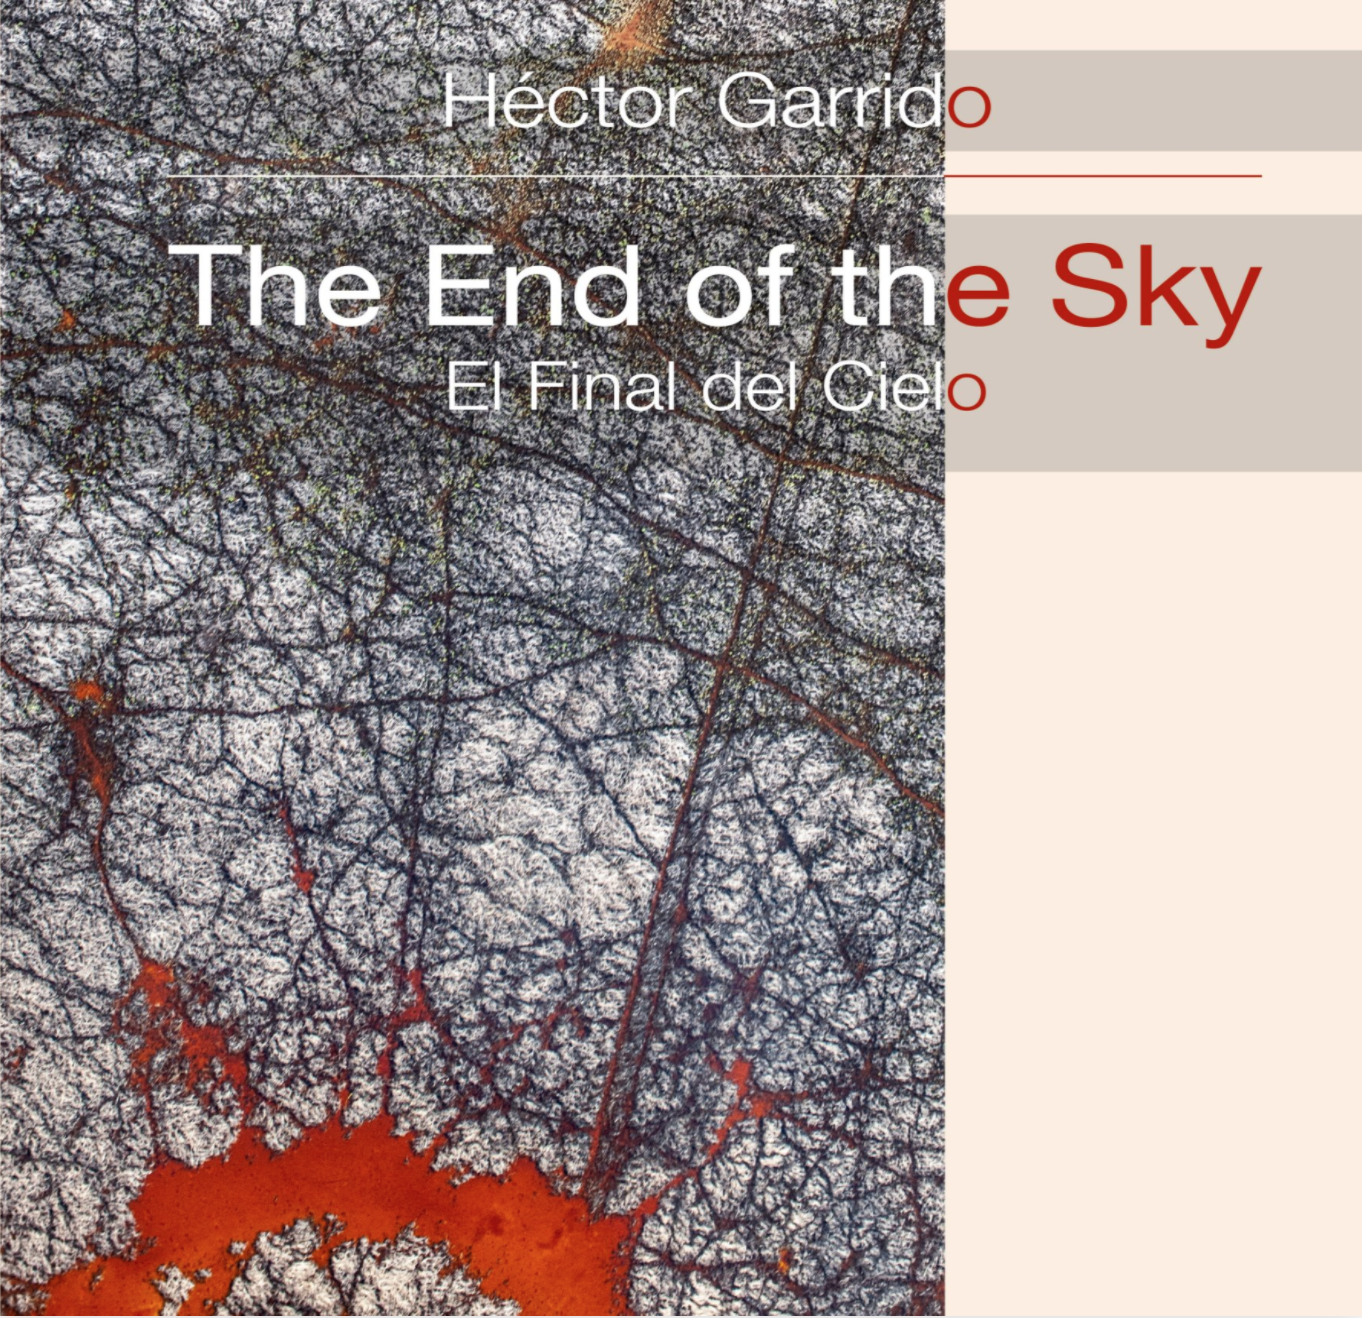 Portada del libro The End of the Sky - The end of the sky - Hector Garrido, Aerial and human photography